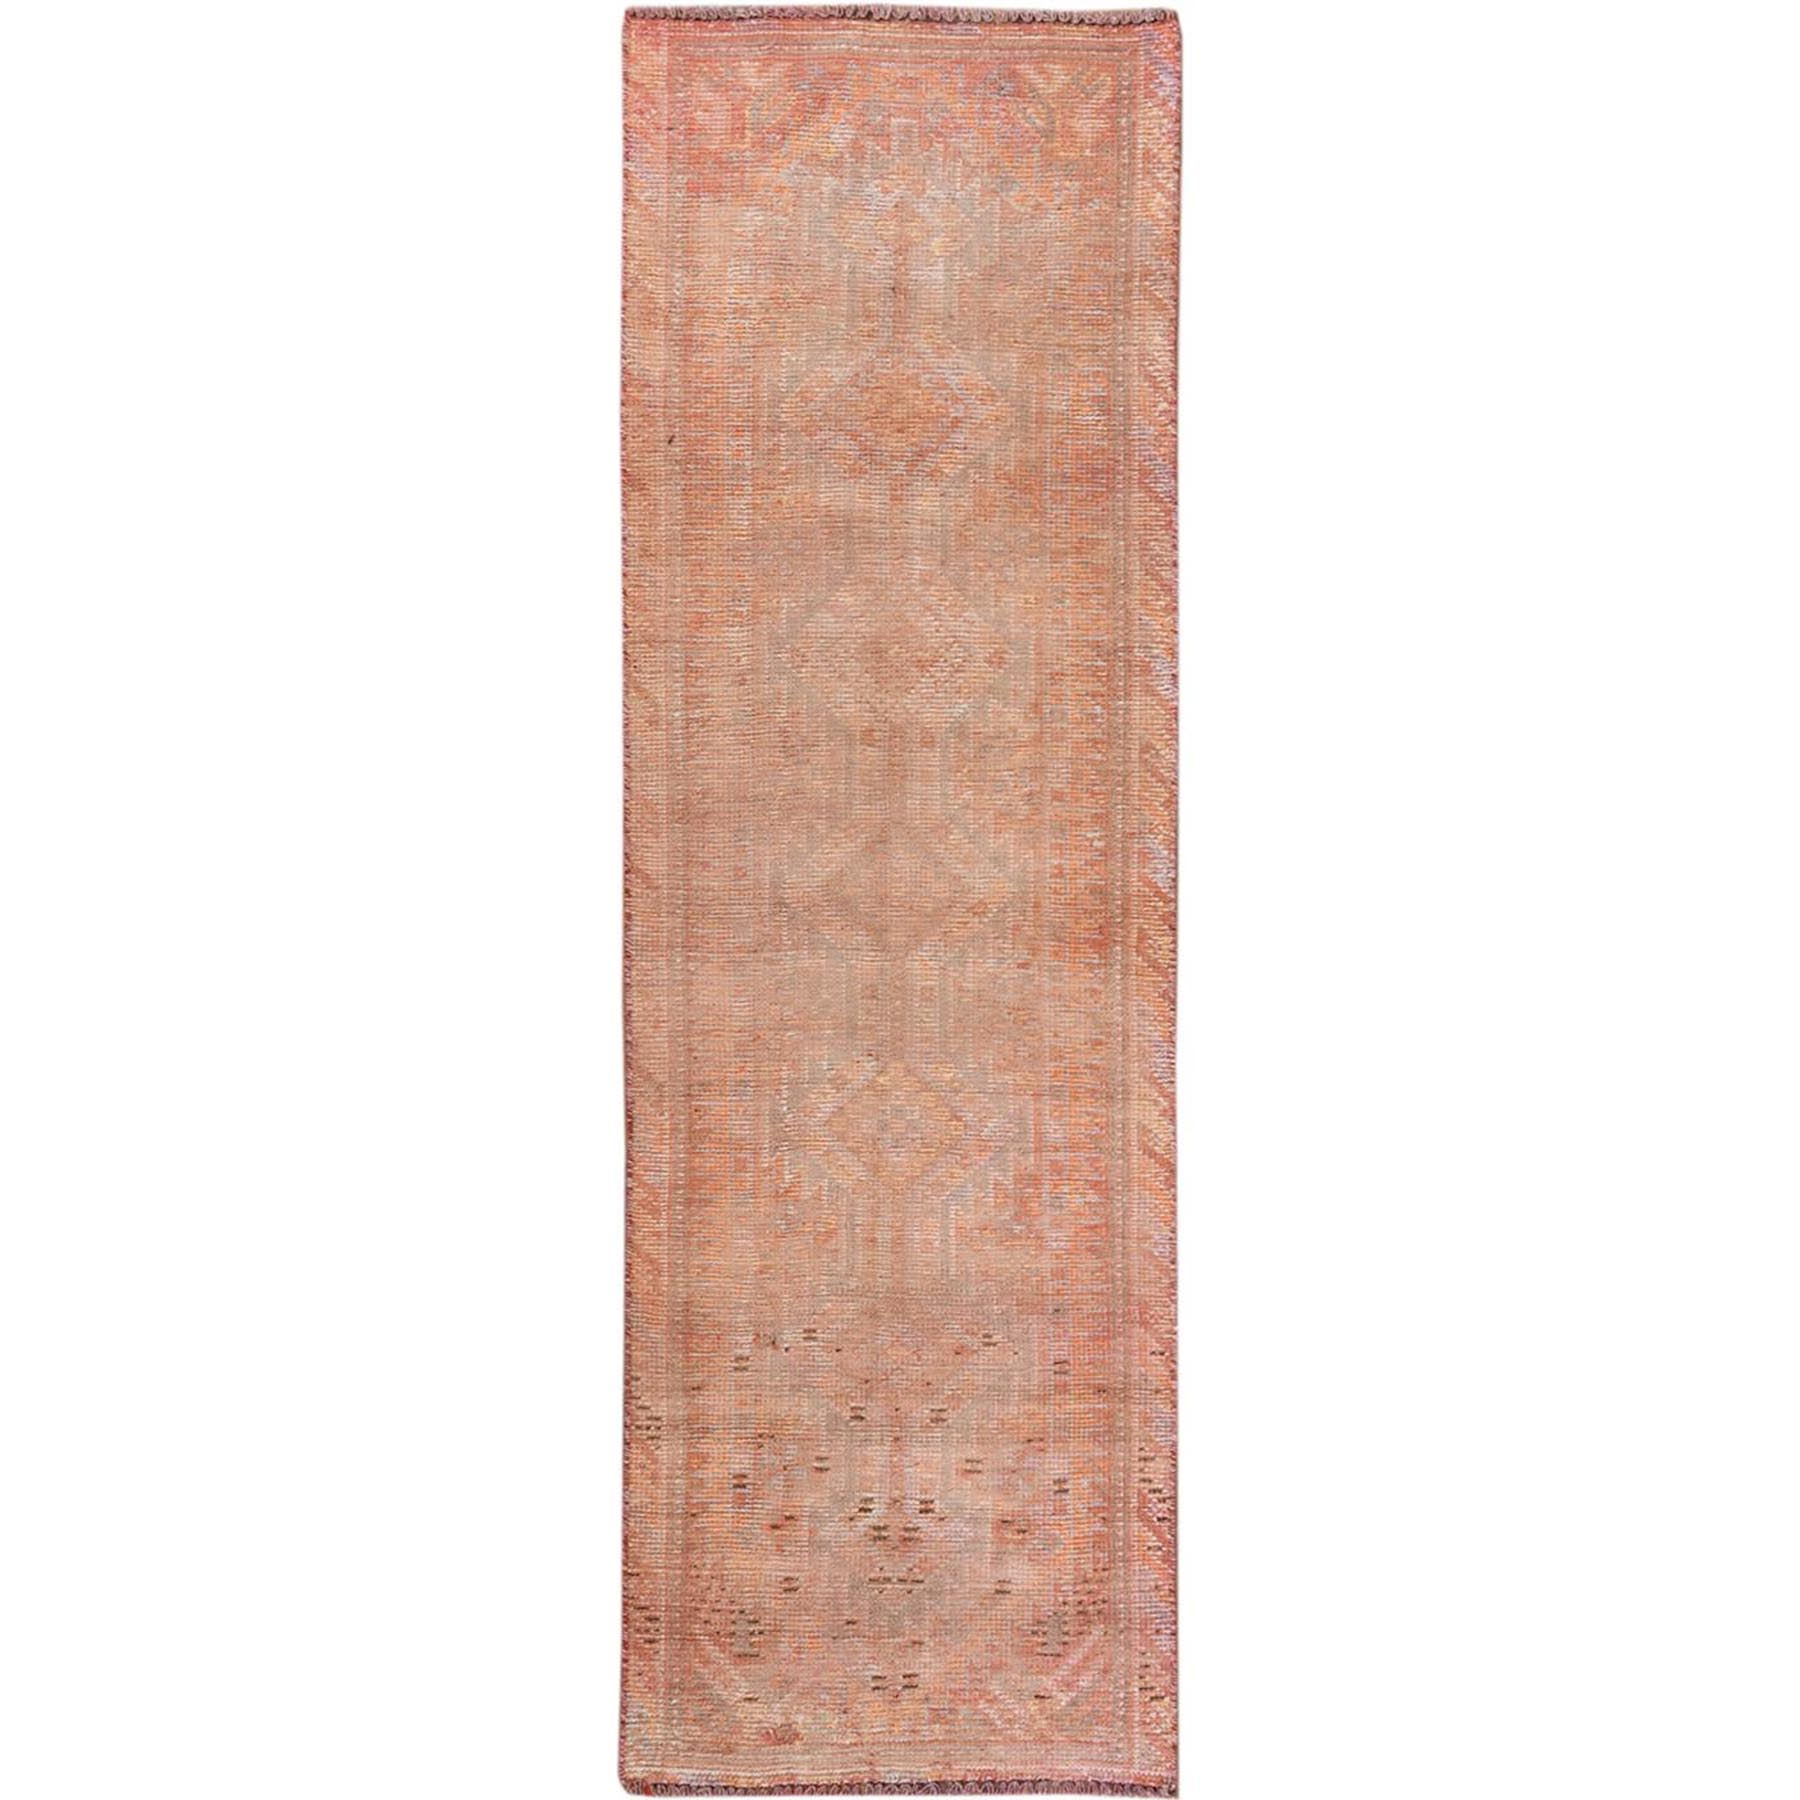 "2'7""x8'2"" Stone Wash Vintage Persian Shiraz Hand Knotted Worn Down Clean Honey Brown Wide Runner Oriental Rug"